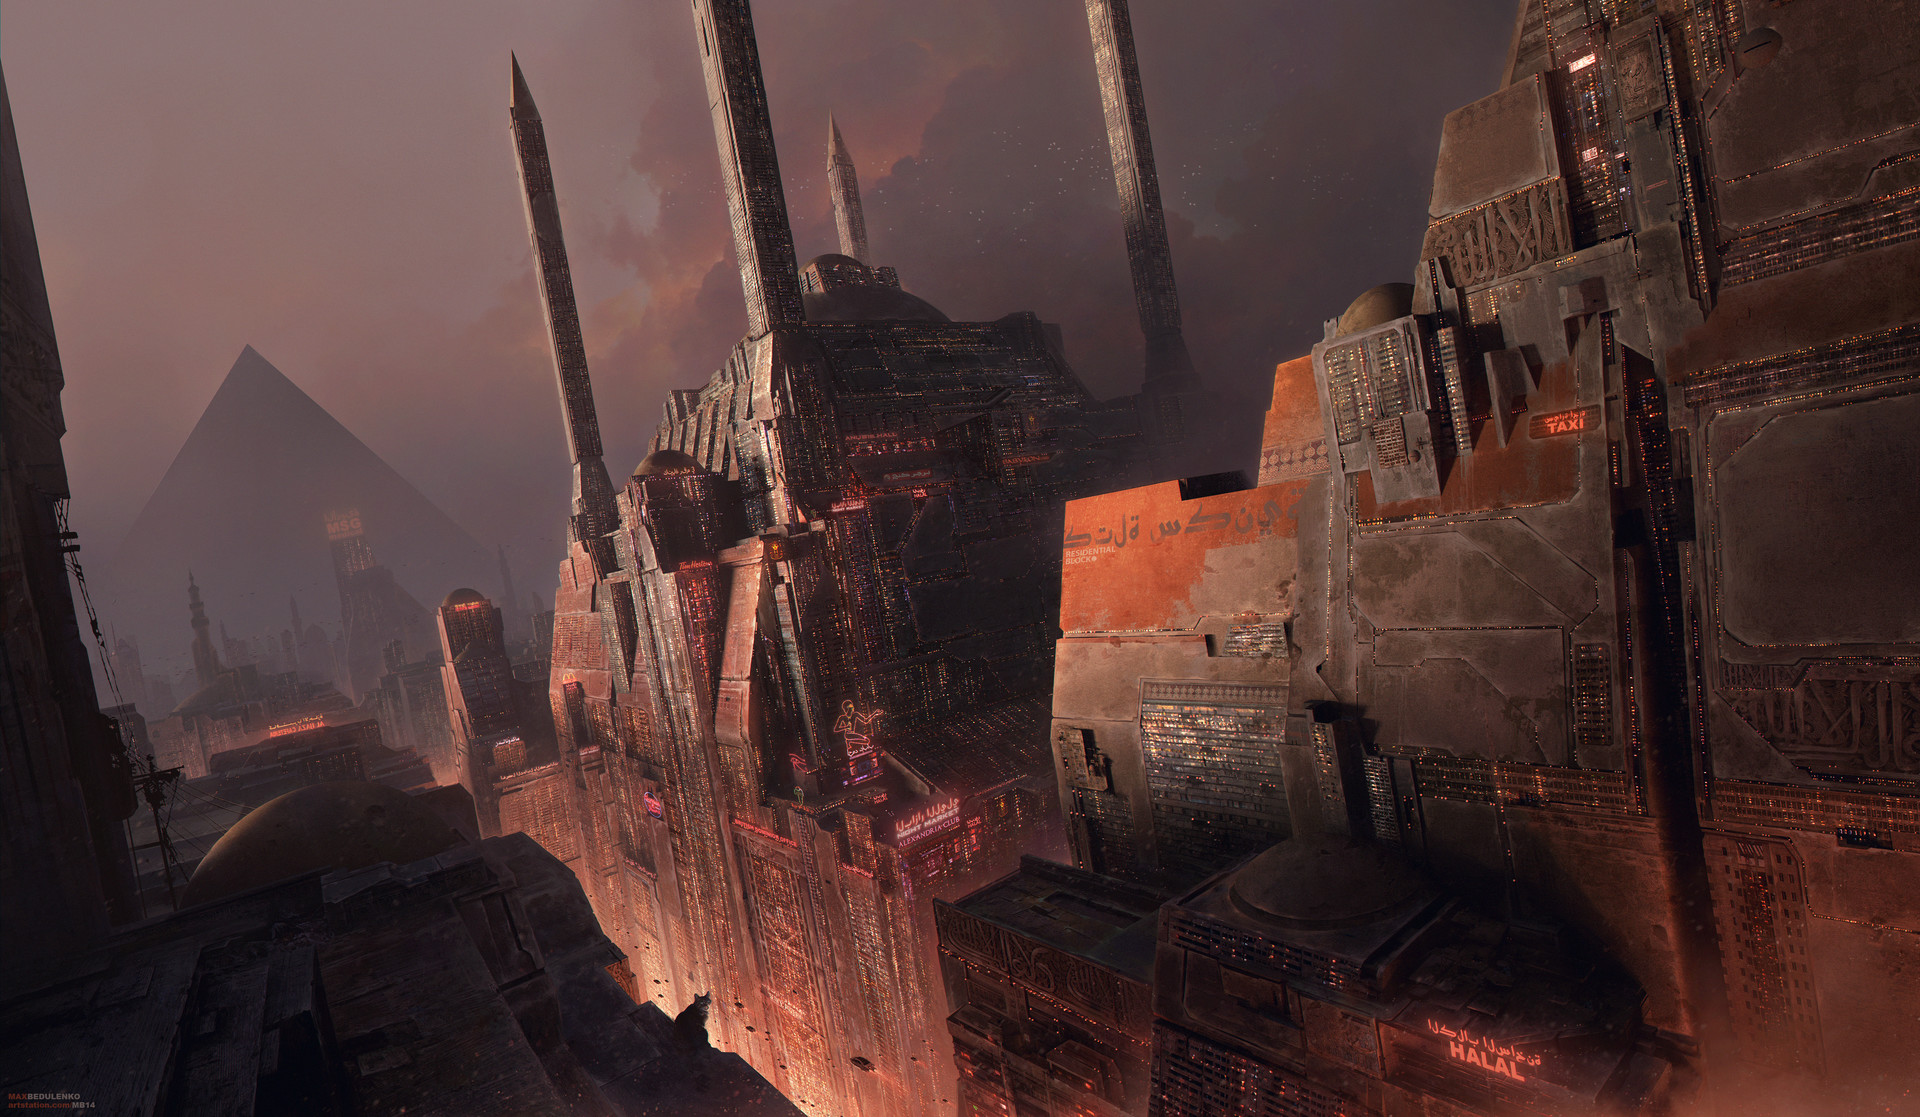 The Science Fiction Art of Max Bedulenko